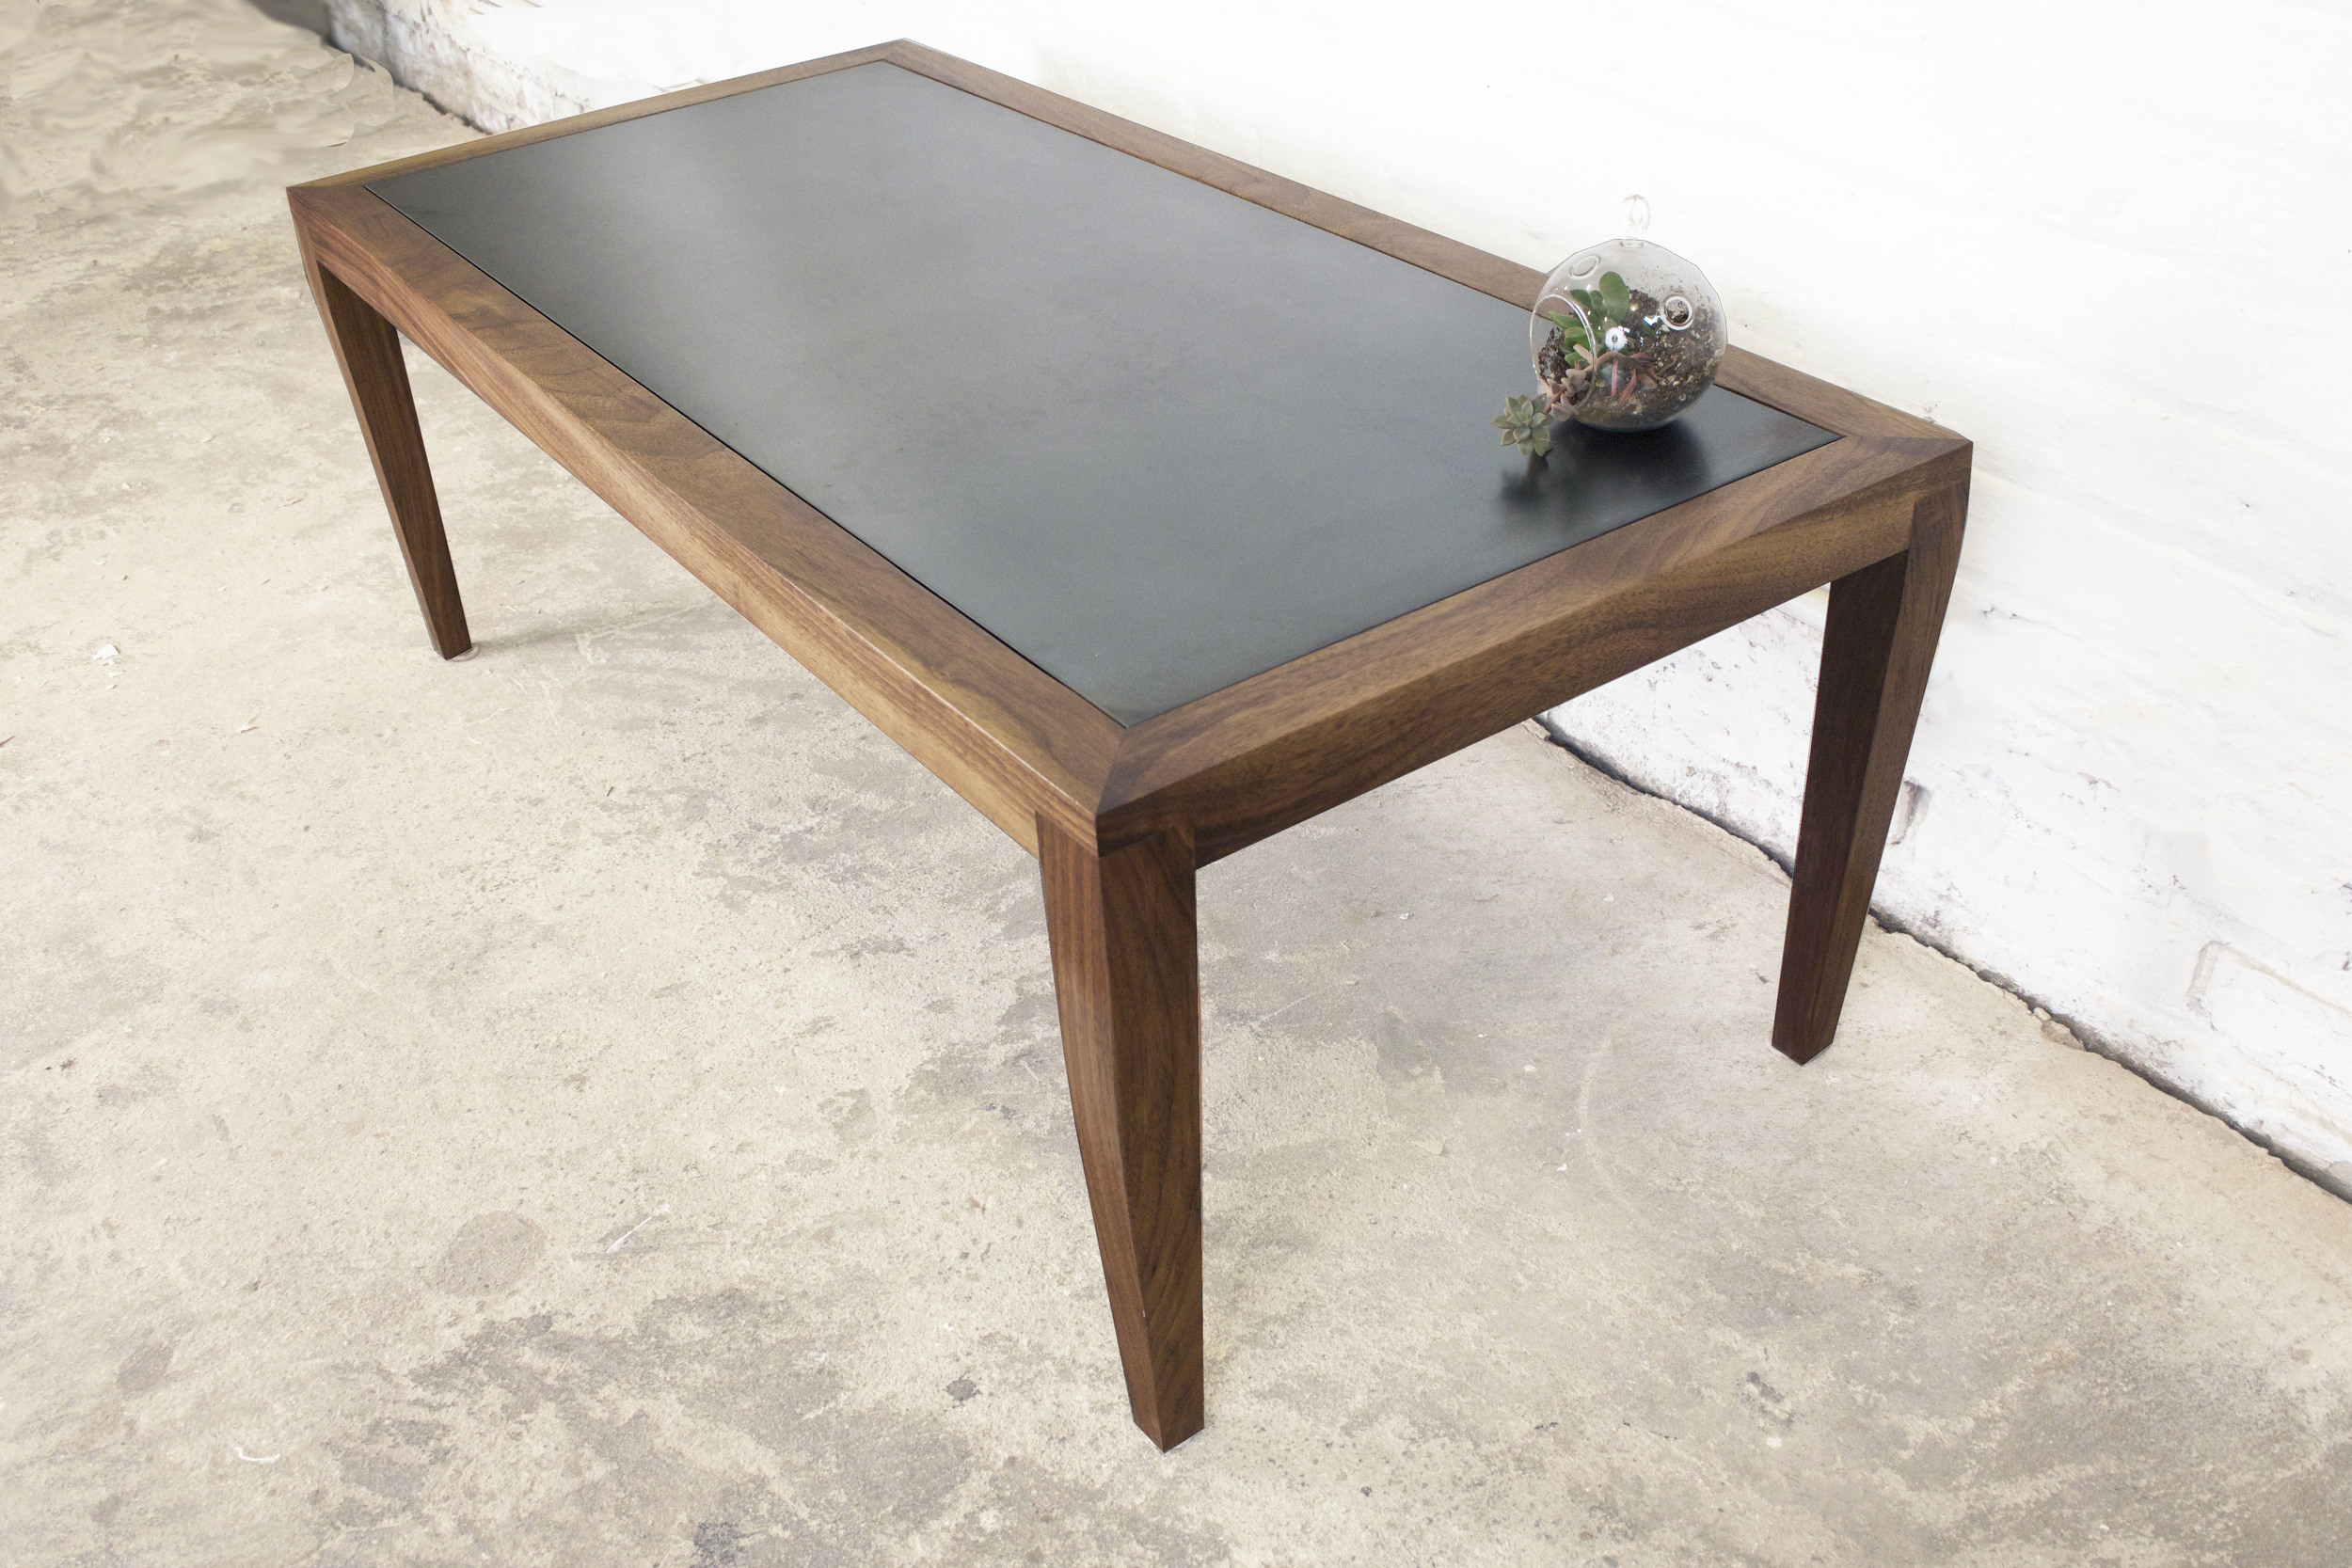 walnut-steel-coffee-table-2.1.jpg